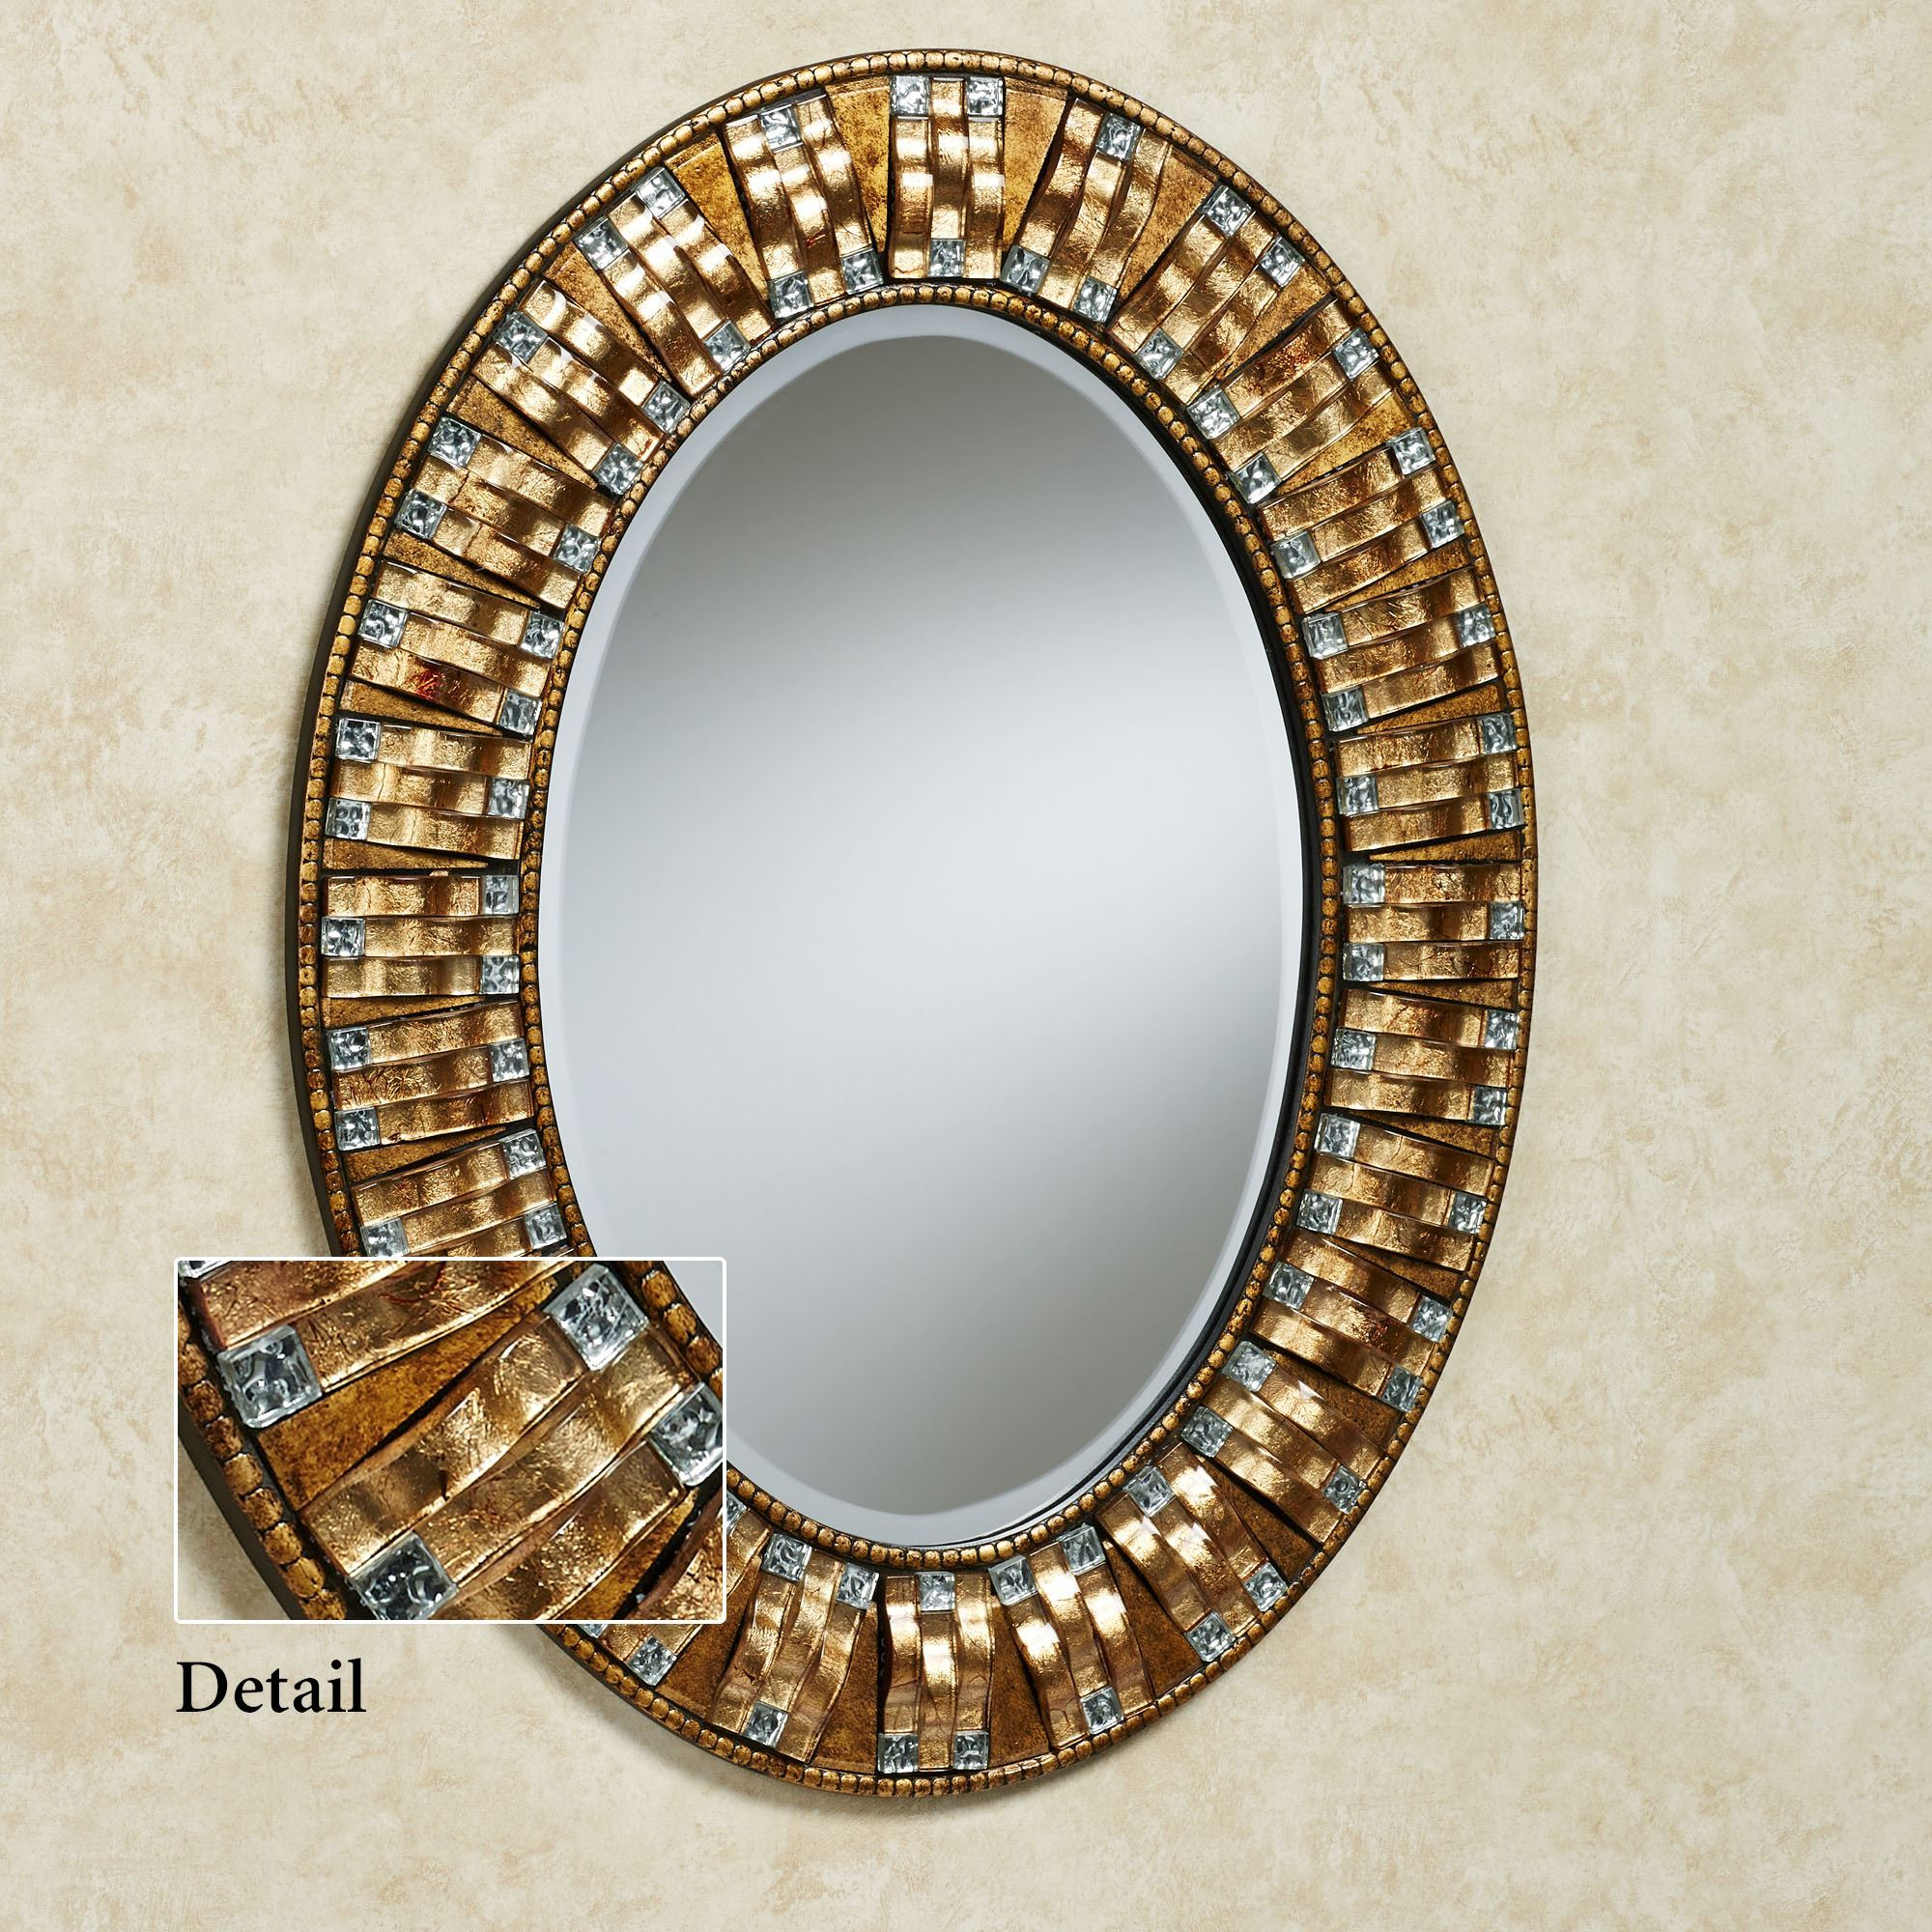 maybelle mosaic oval wall mirror. Black Bedroom Furniture Sets. Home Design Ideas